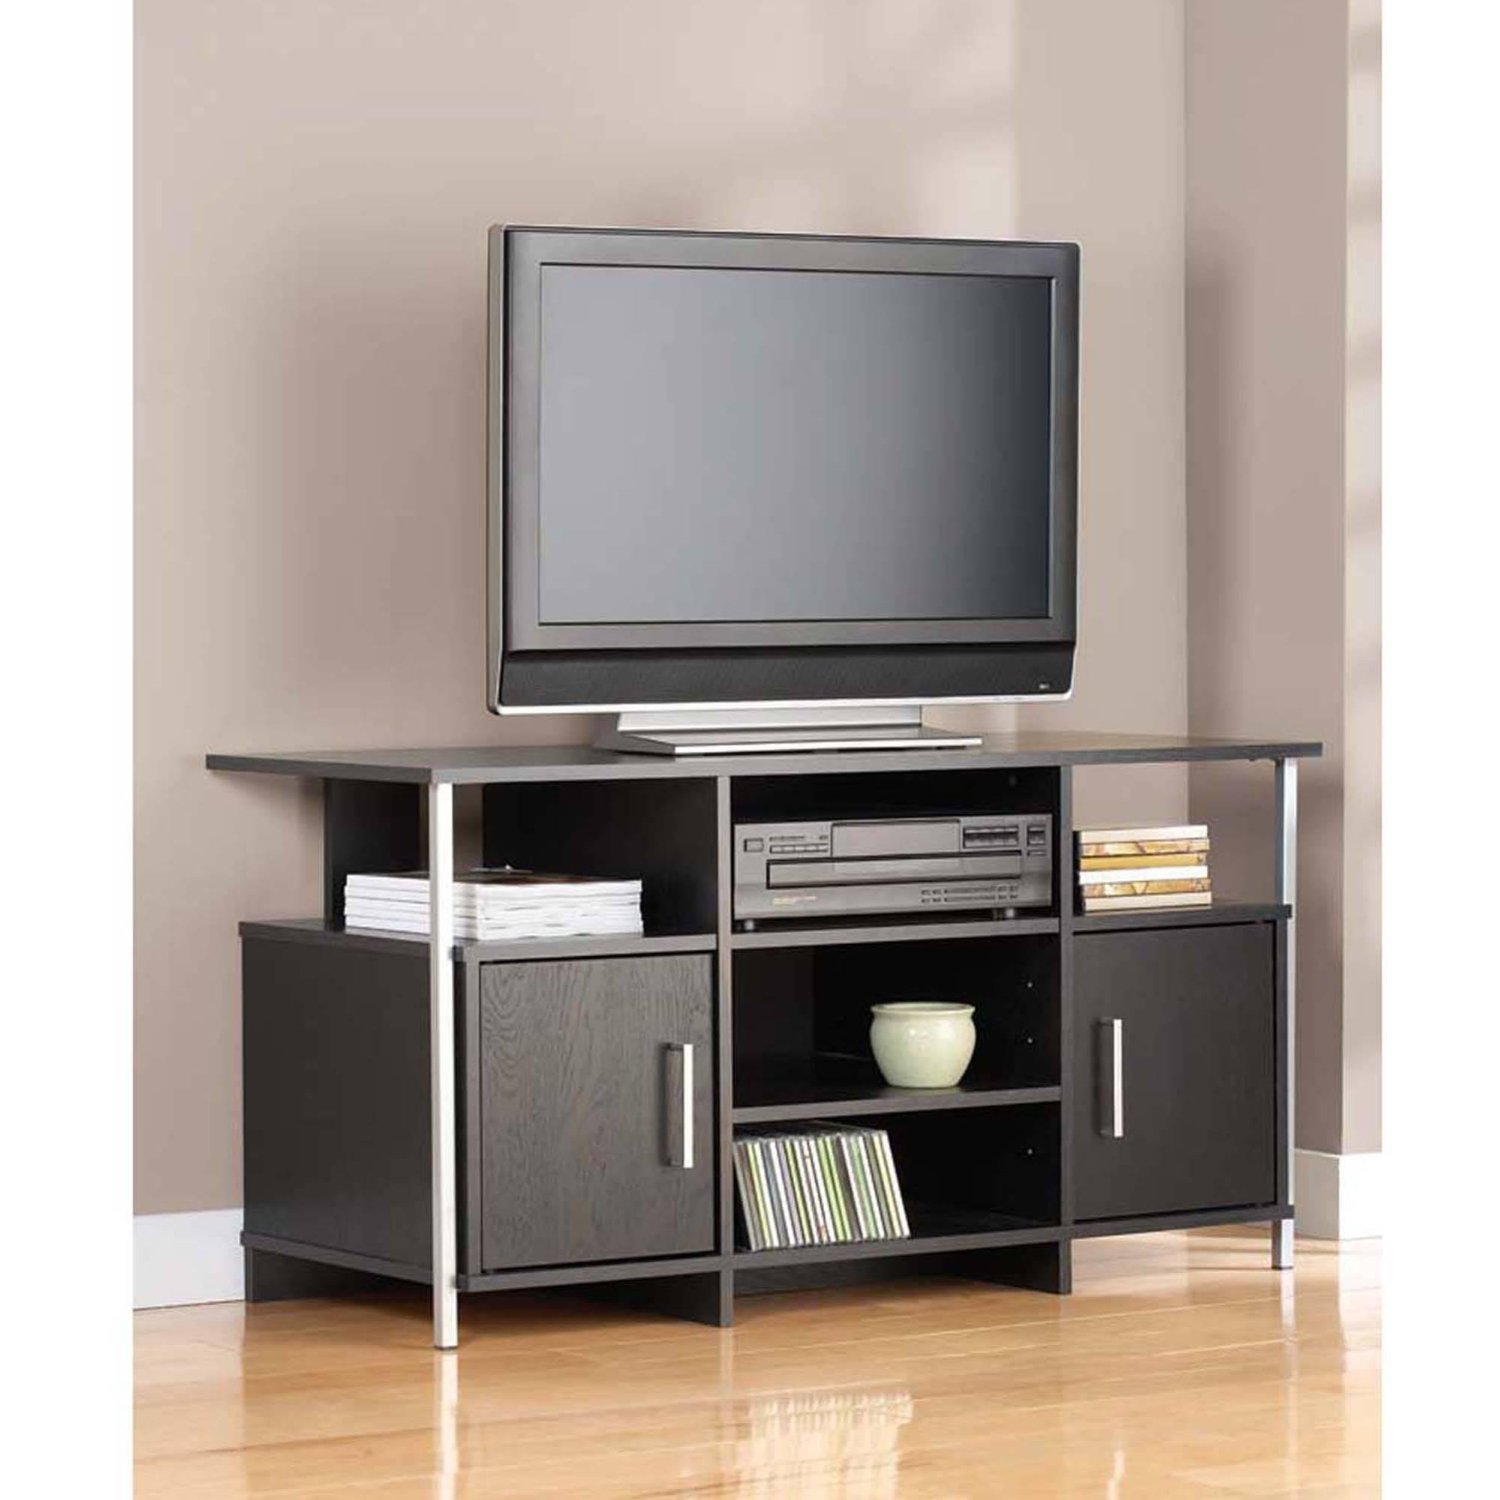 Cheap Tv Wire Management, find Tv Wire Management deals on line at ...